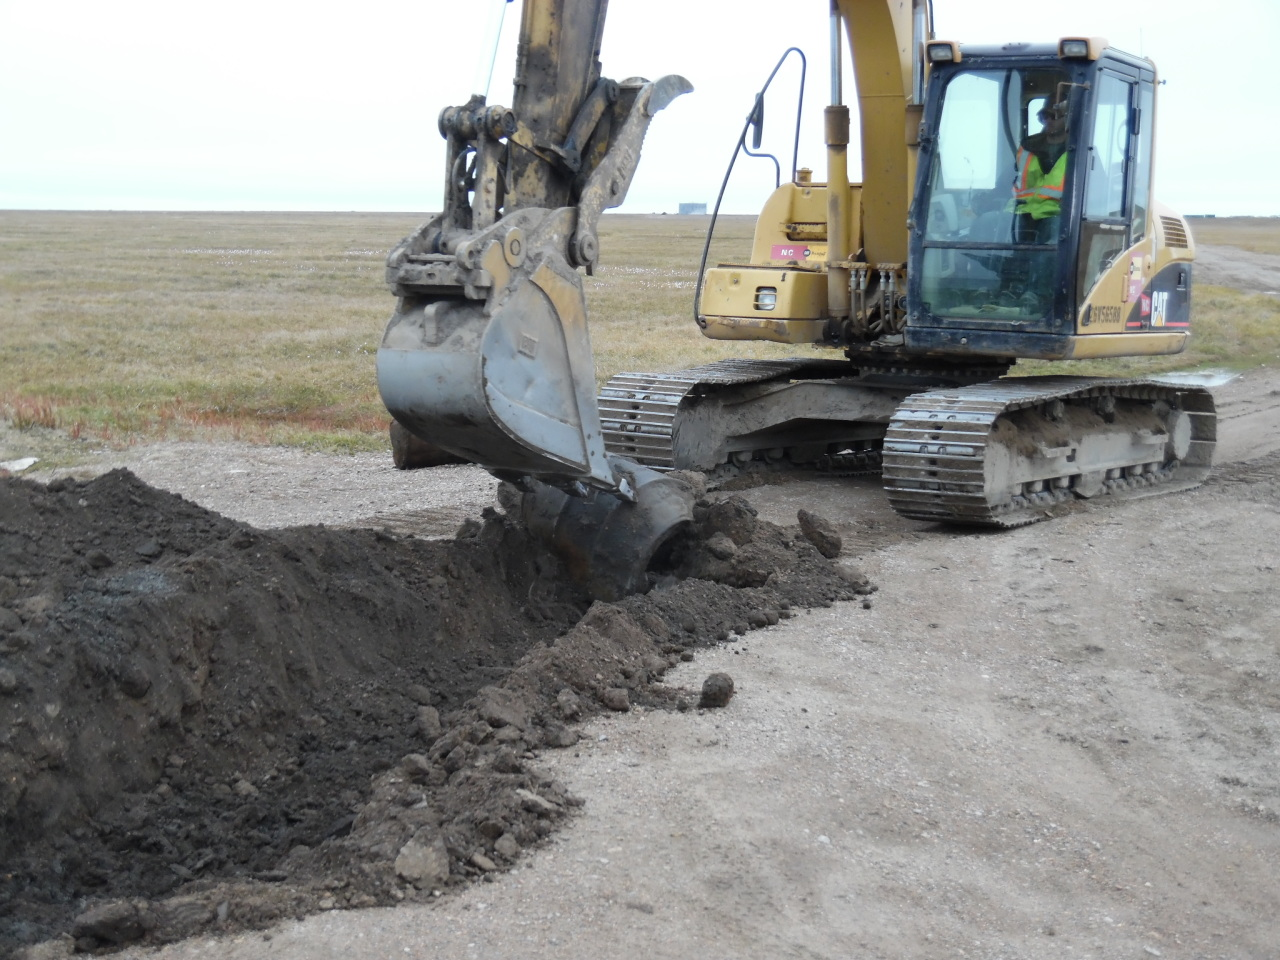 Excavating buried drums found with the EM61